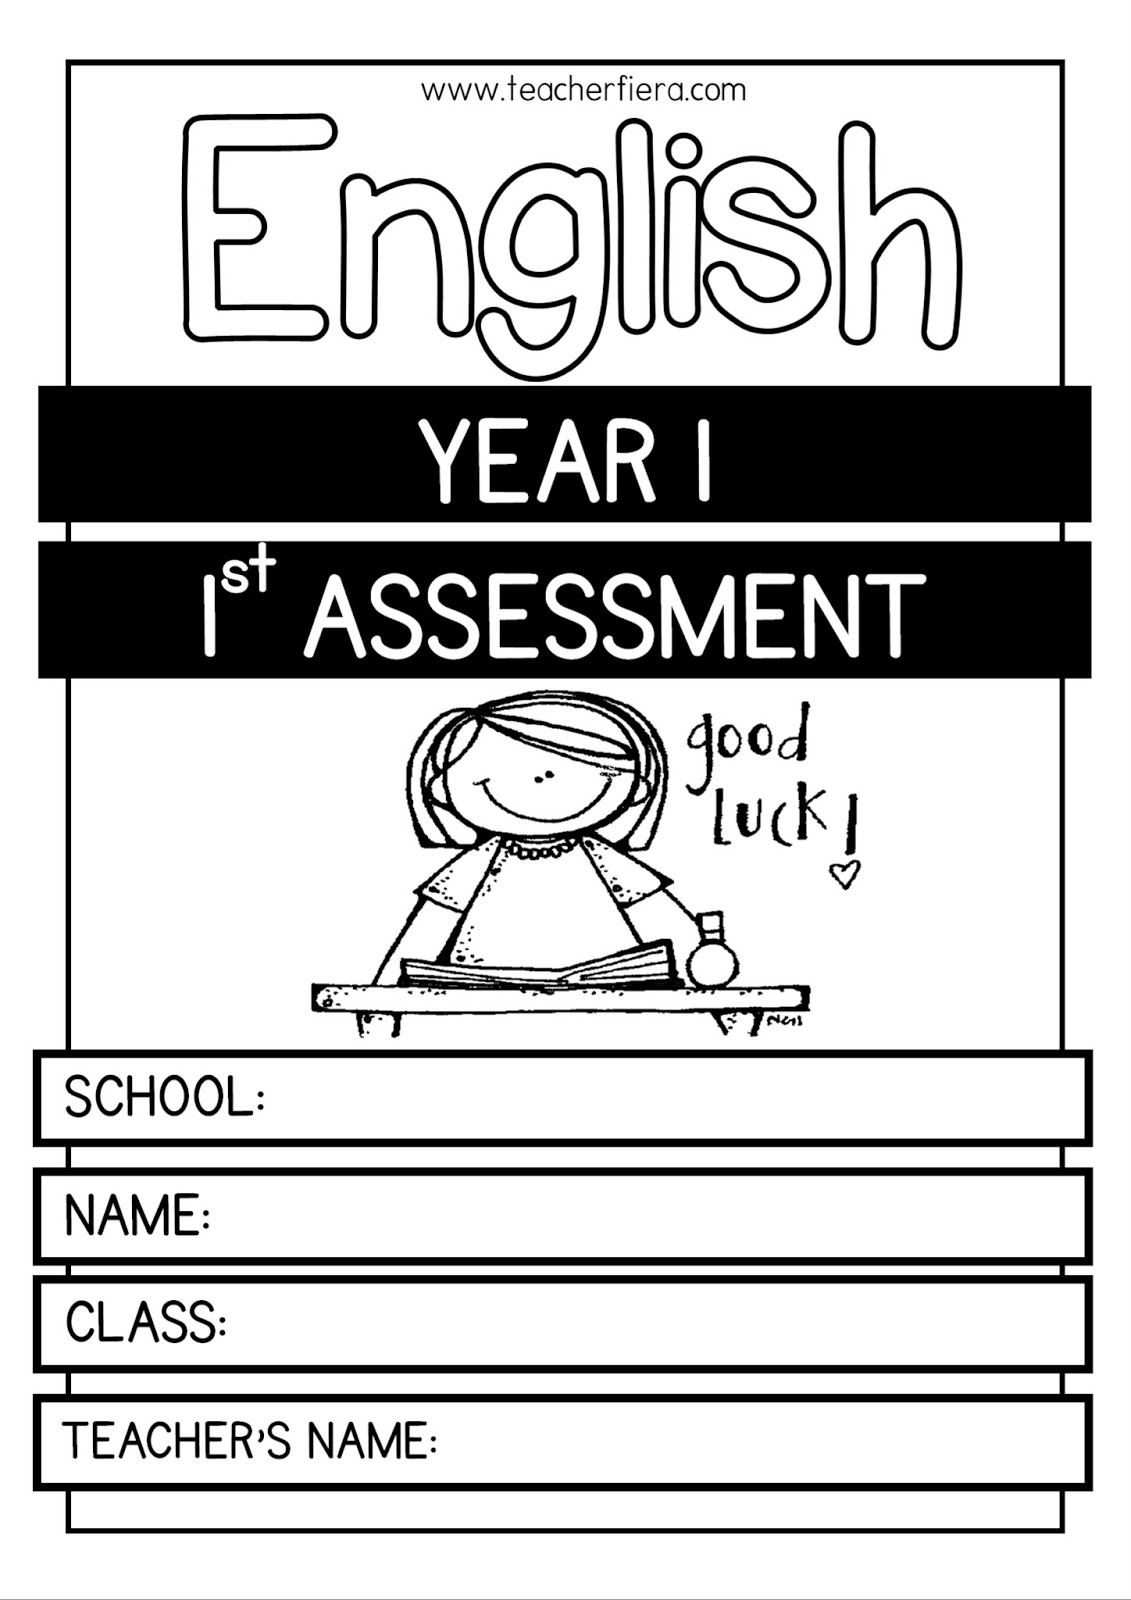 Teacherfiera Year 1 1st English Assessment